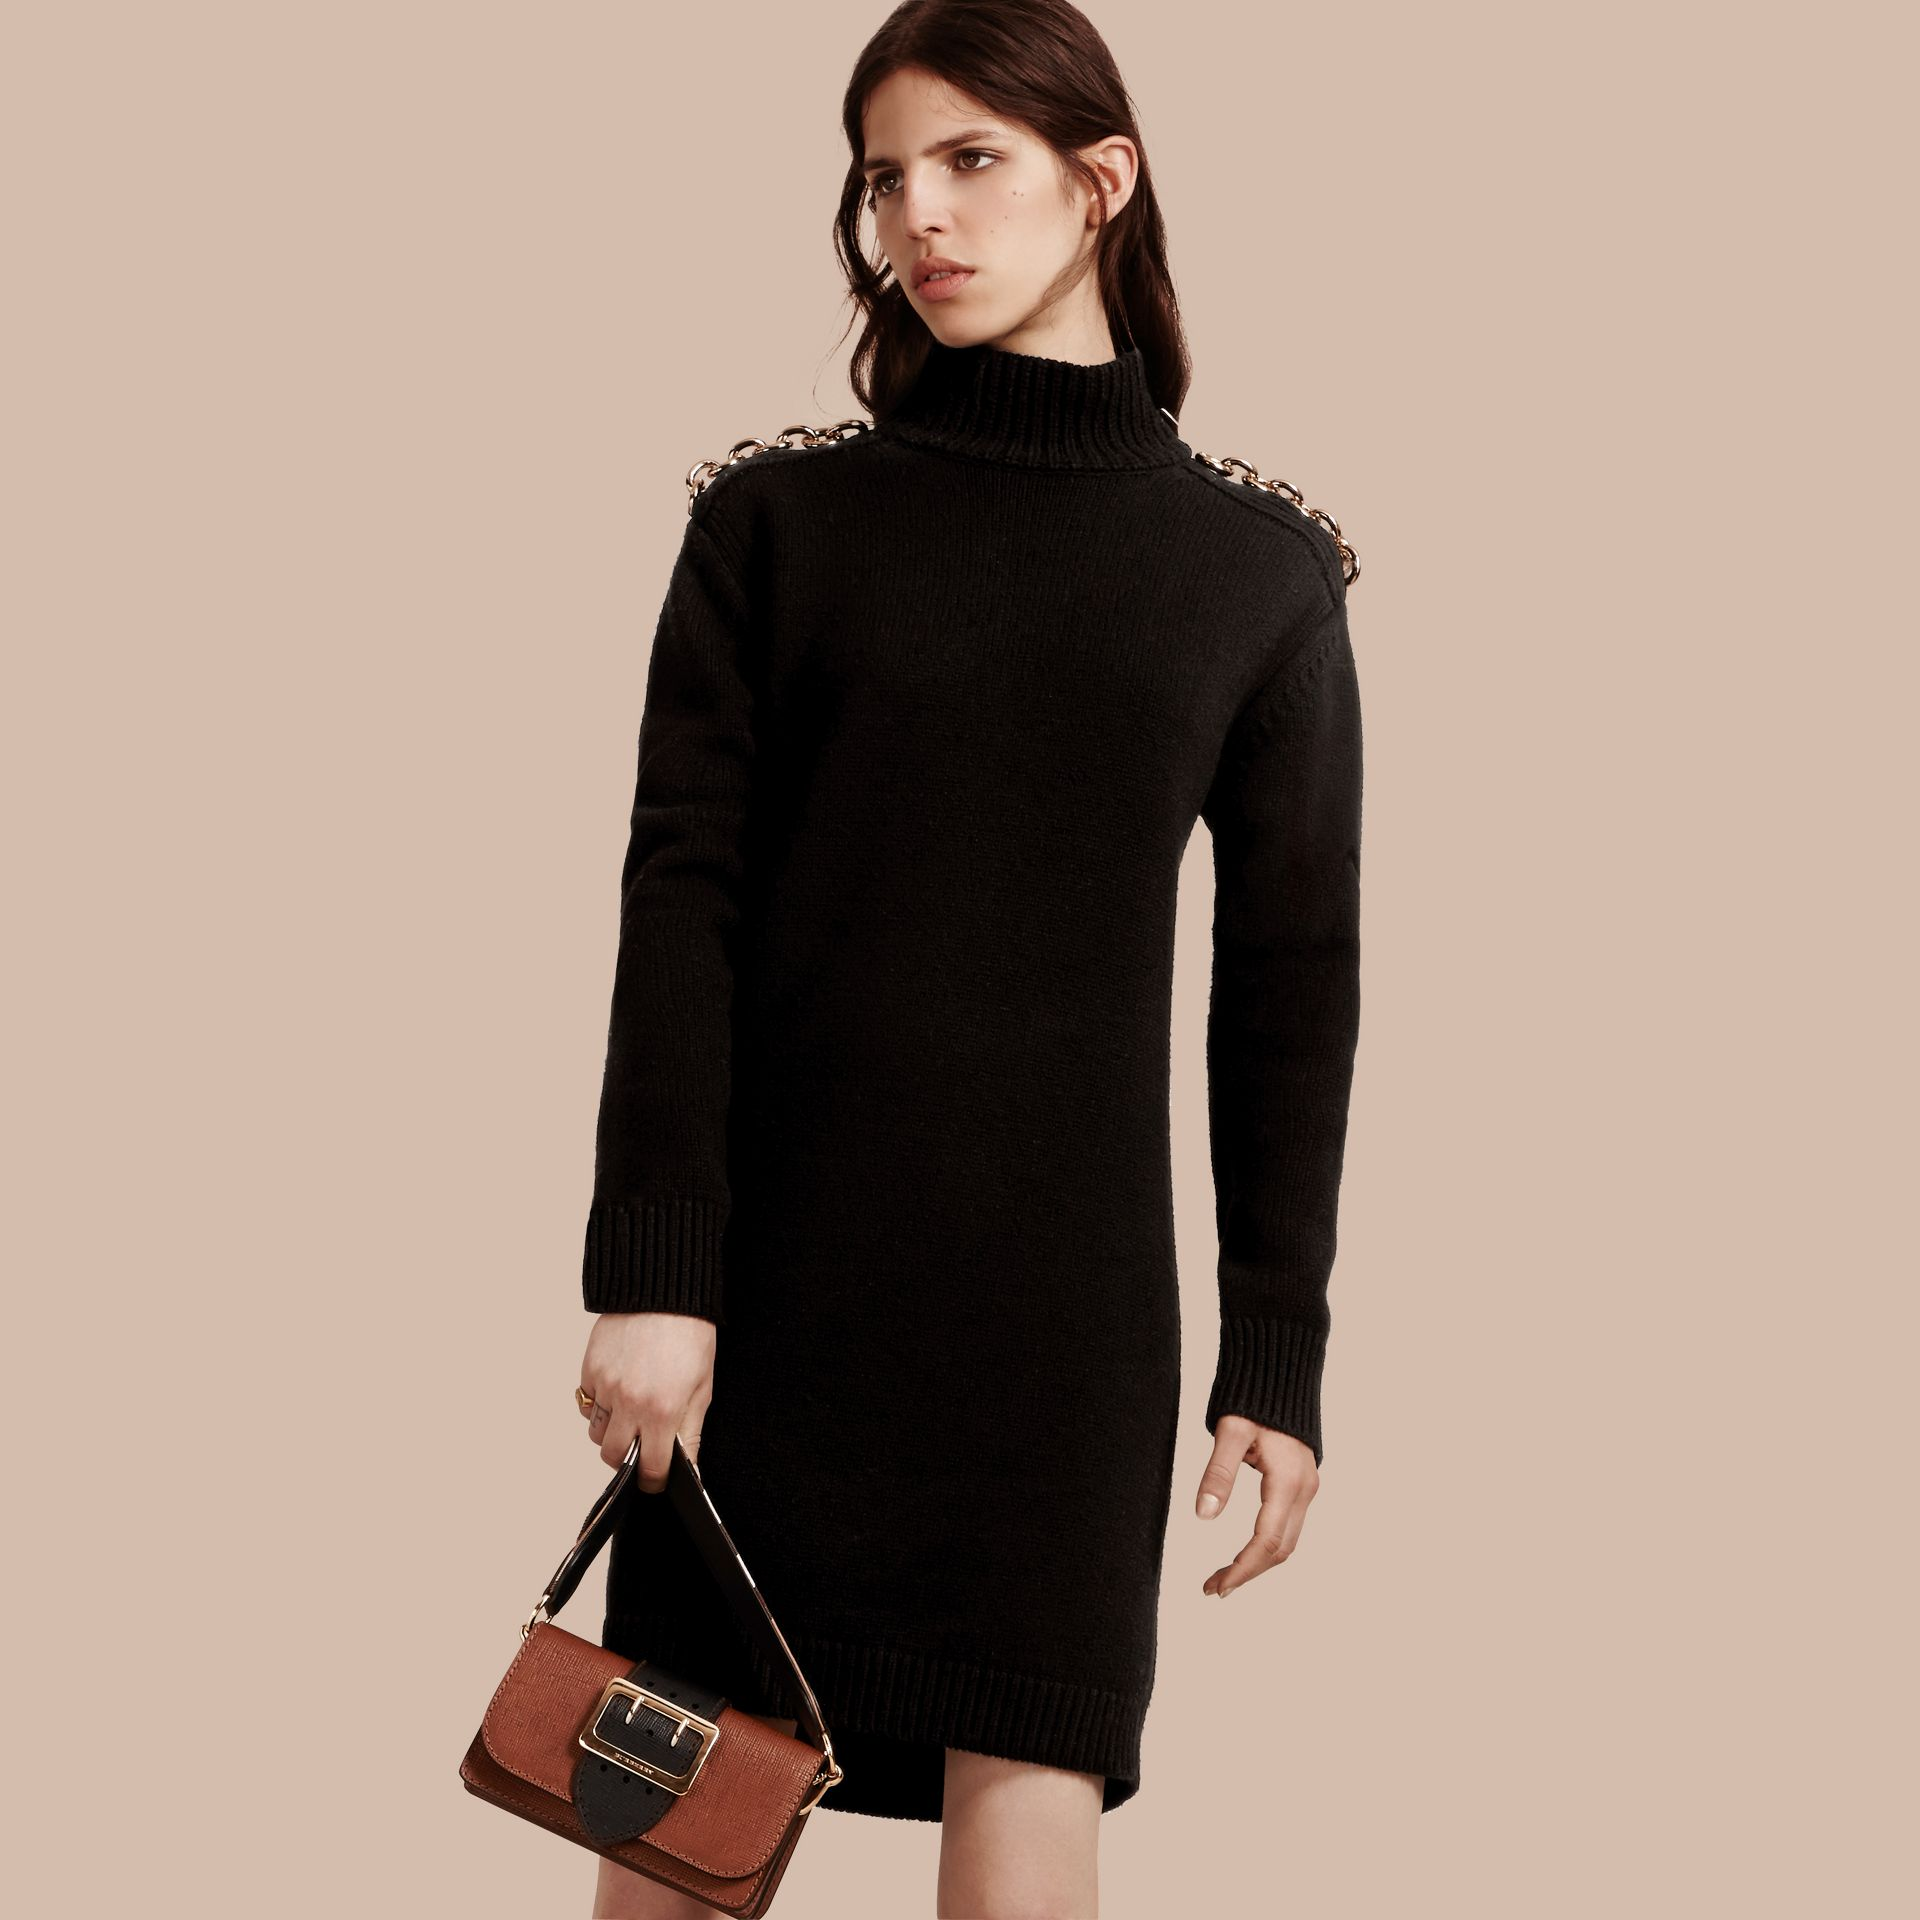 Black Chain Detail Wool Cashmere High-neck Dress Black - gallery image 1